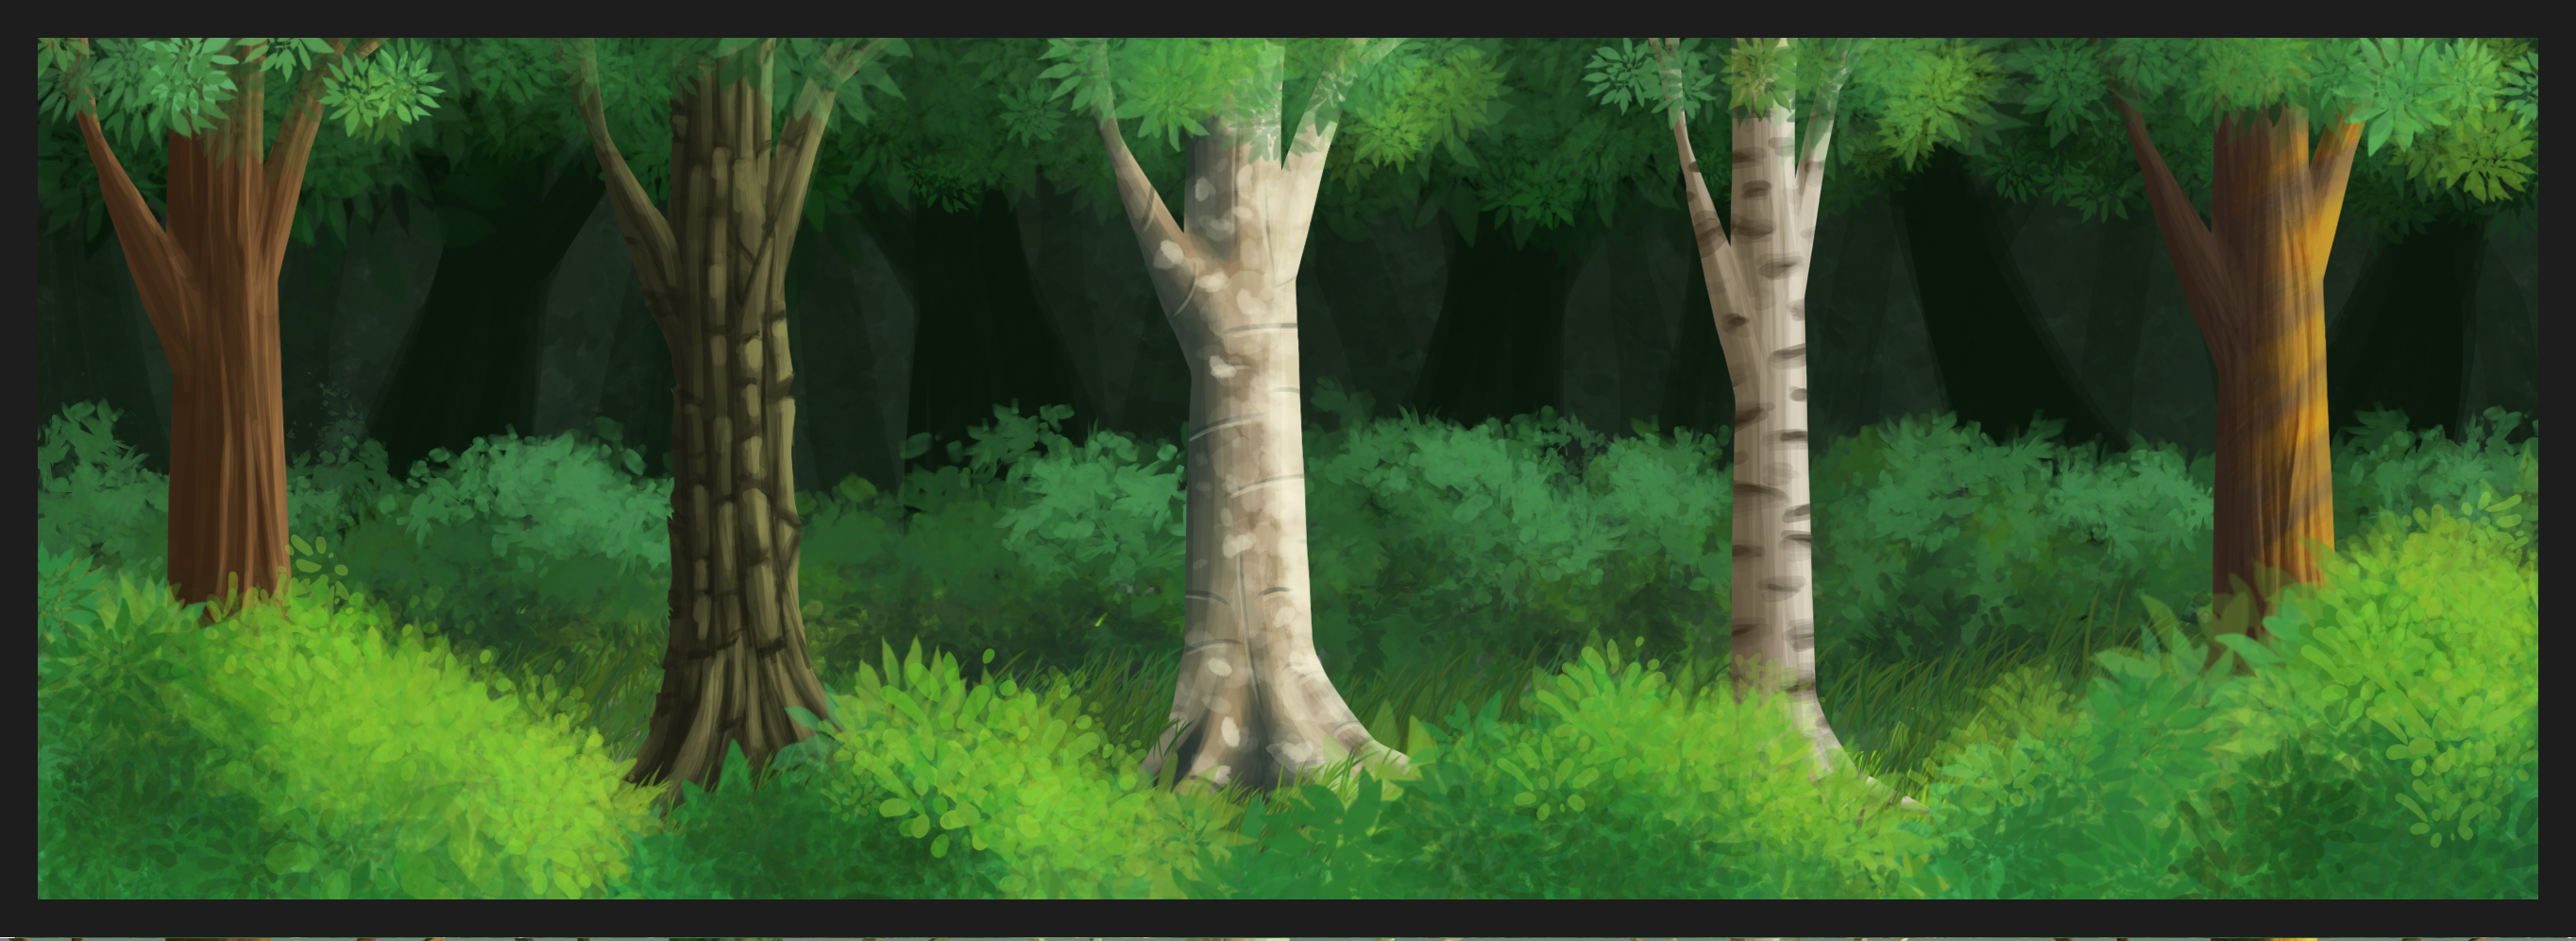 arbre_painting_exo